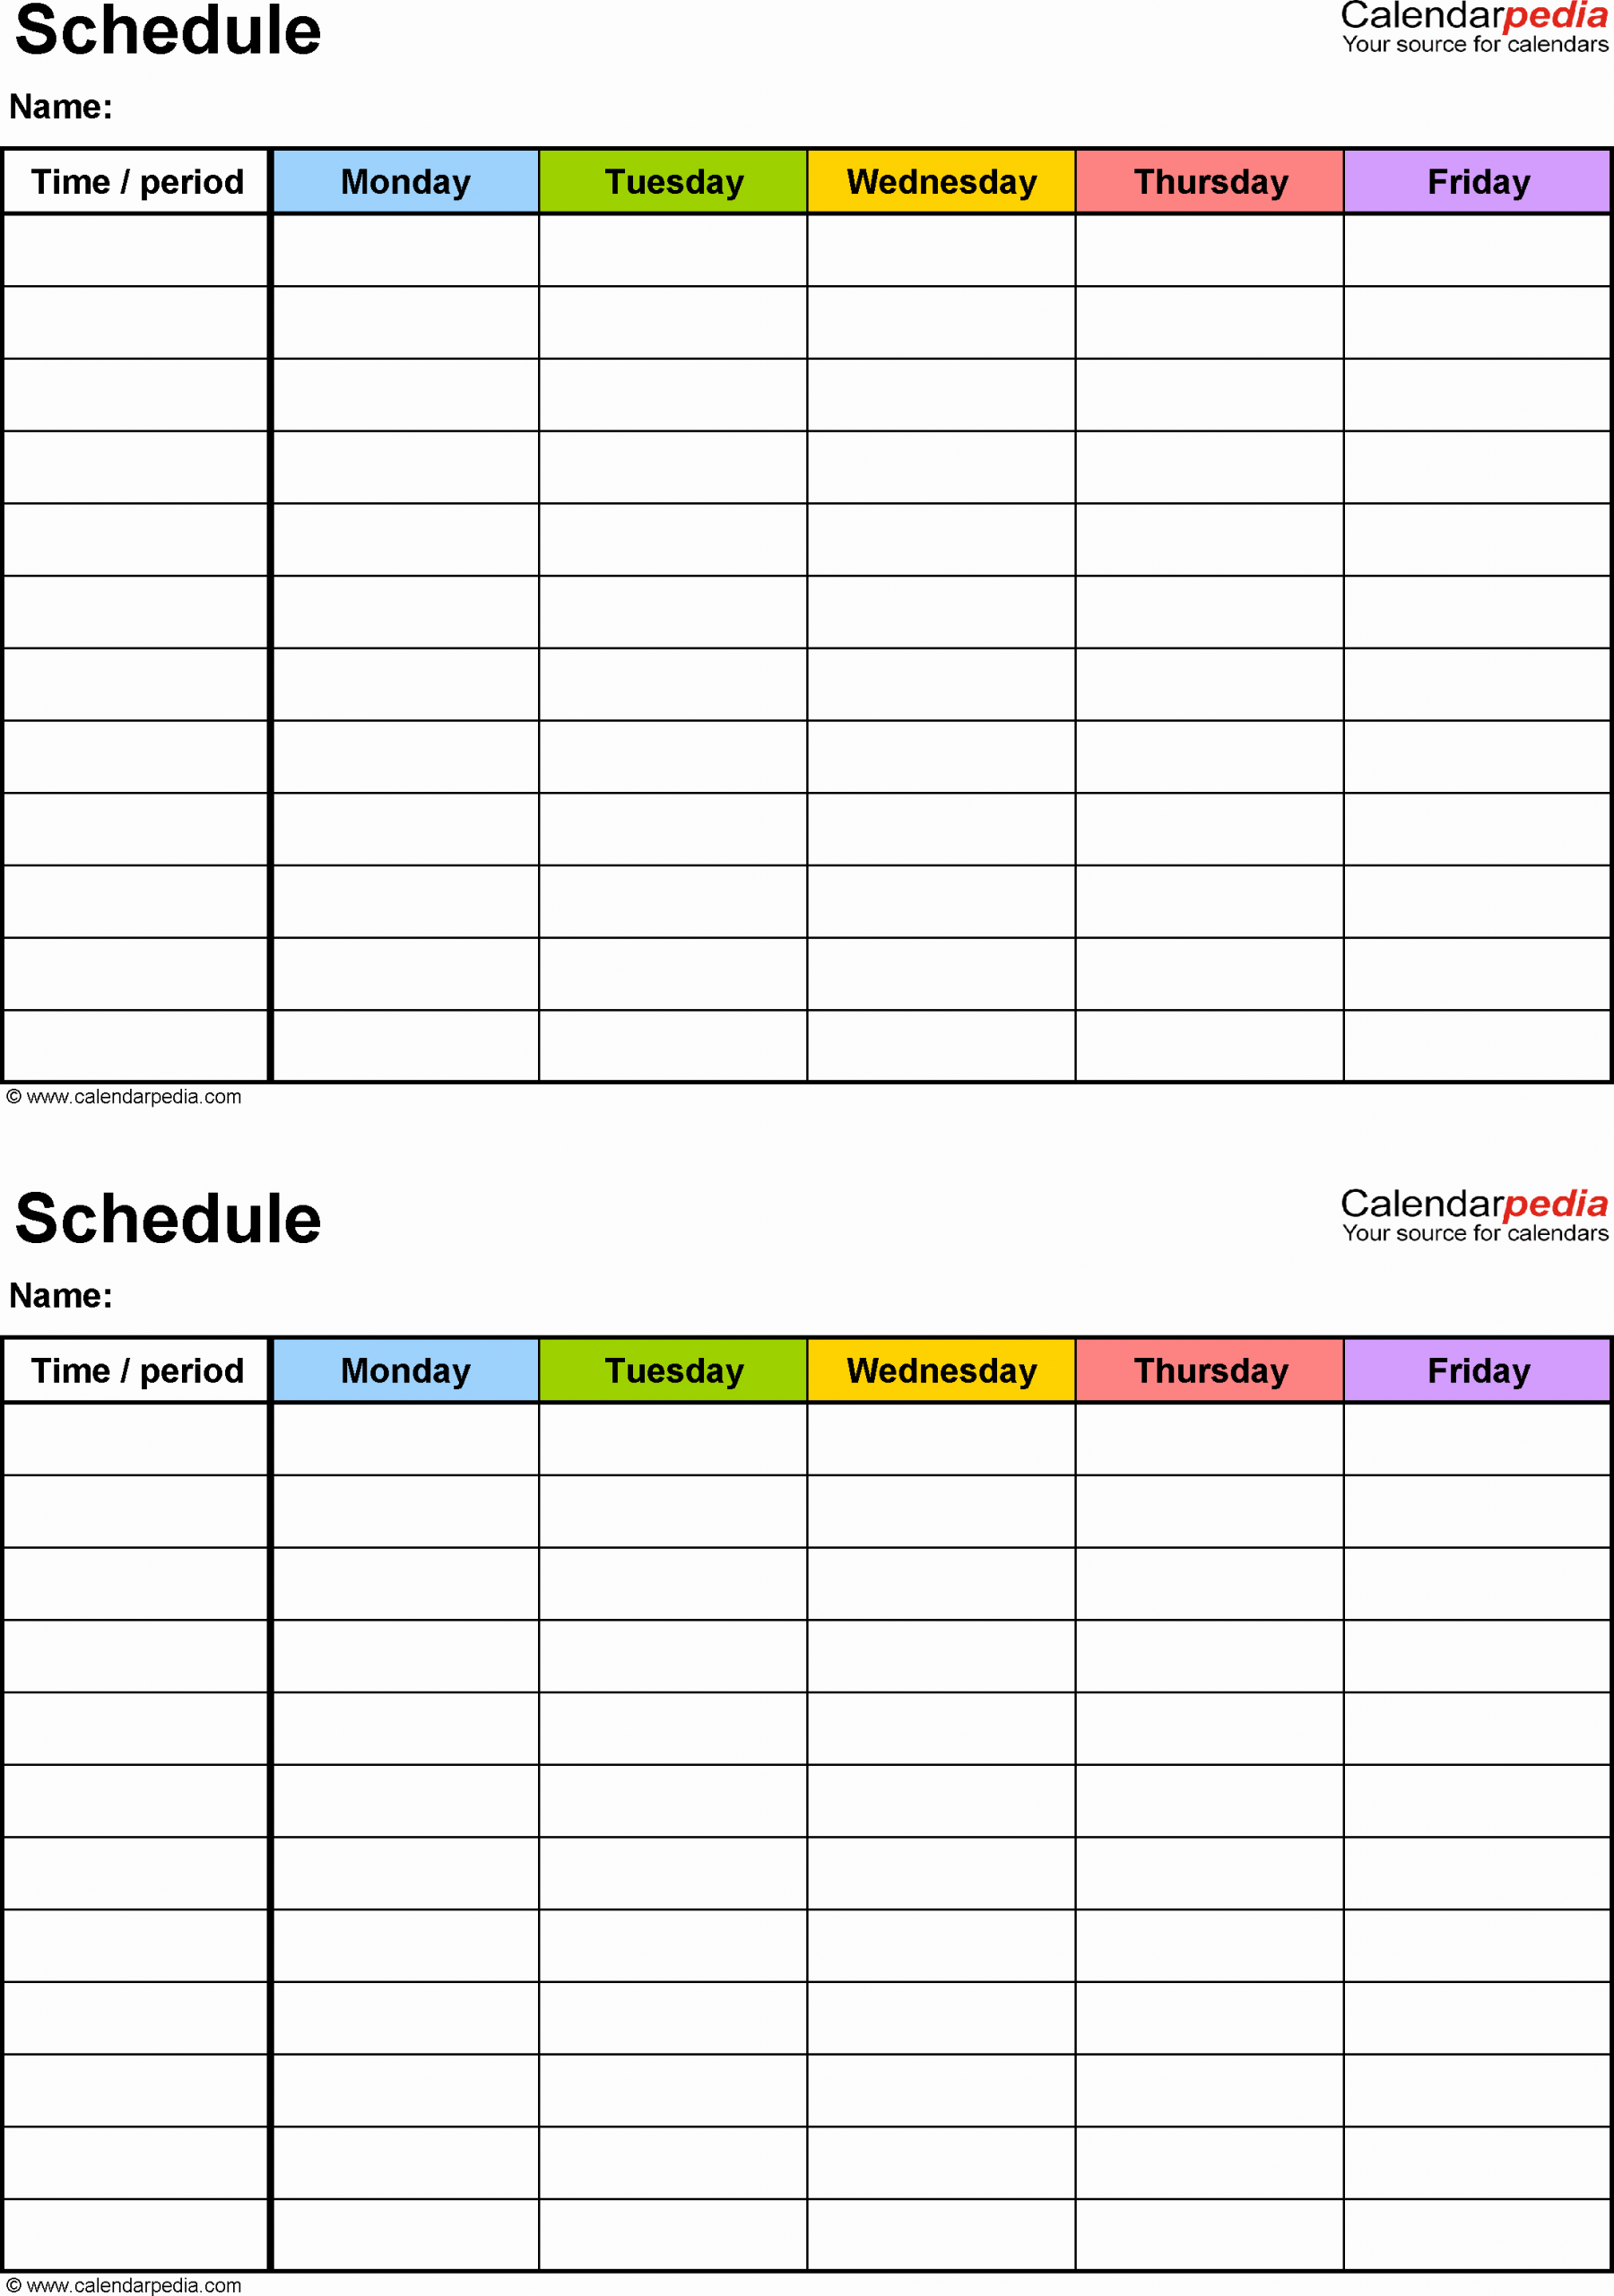 Blank School Schedule Template New Free Weekly Schedule Templates for Excel Blank Class